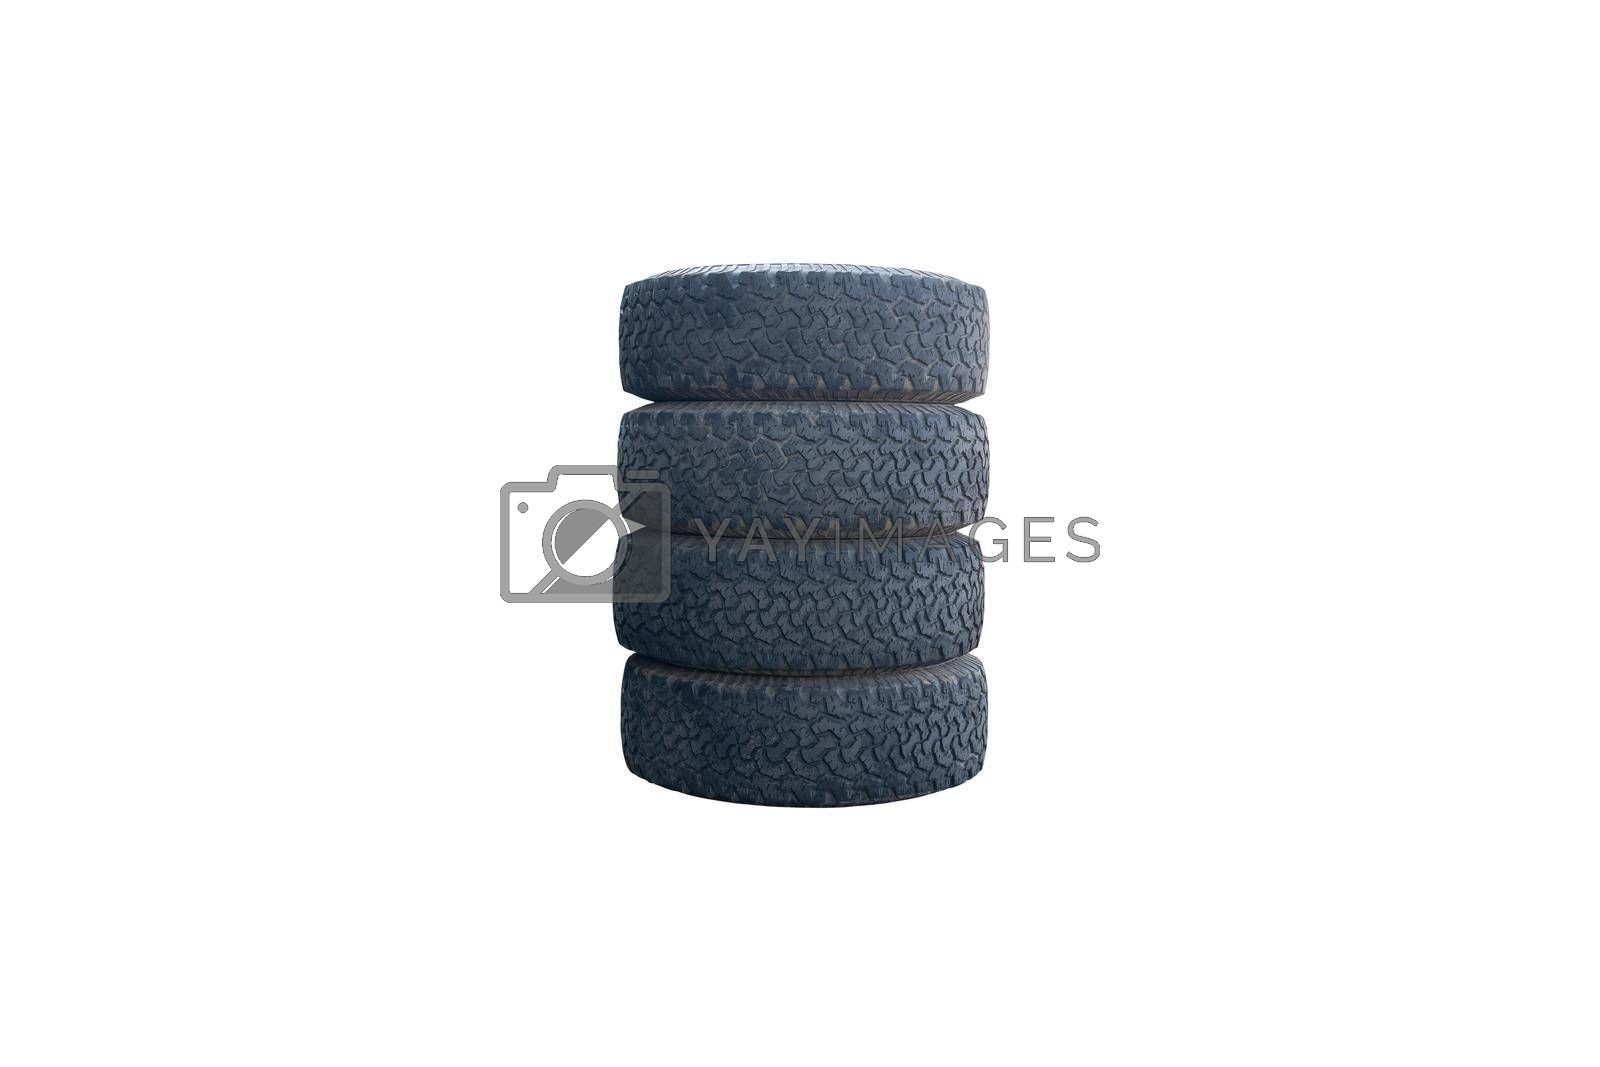 Pile of old car tires isolated on white background, with clipping path.